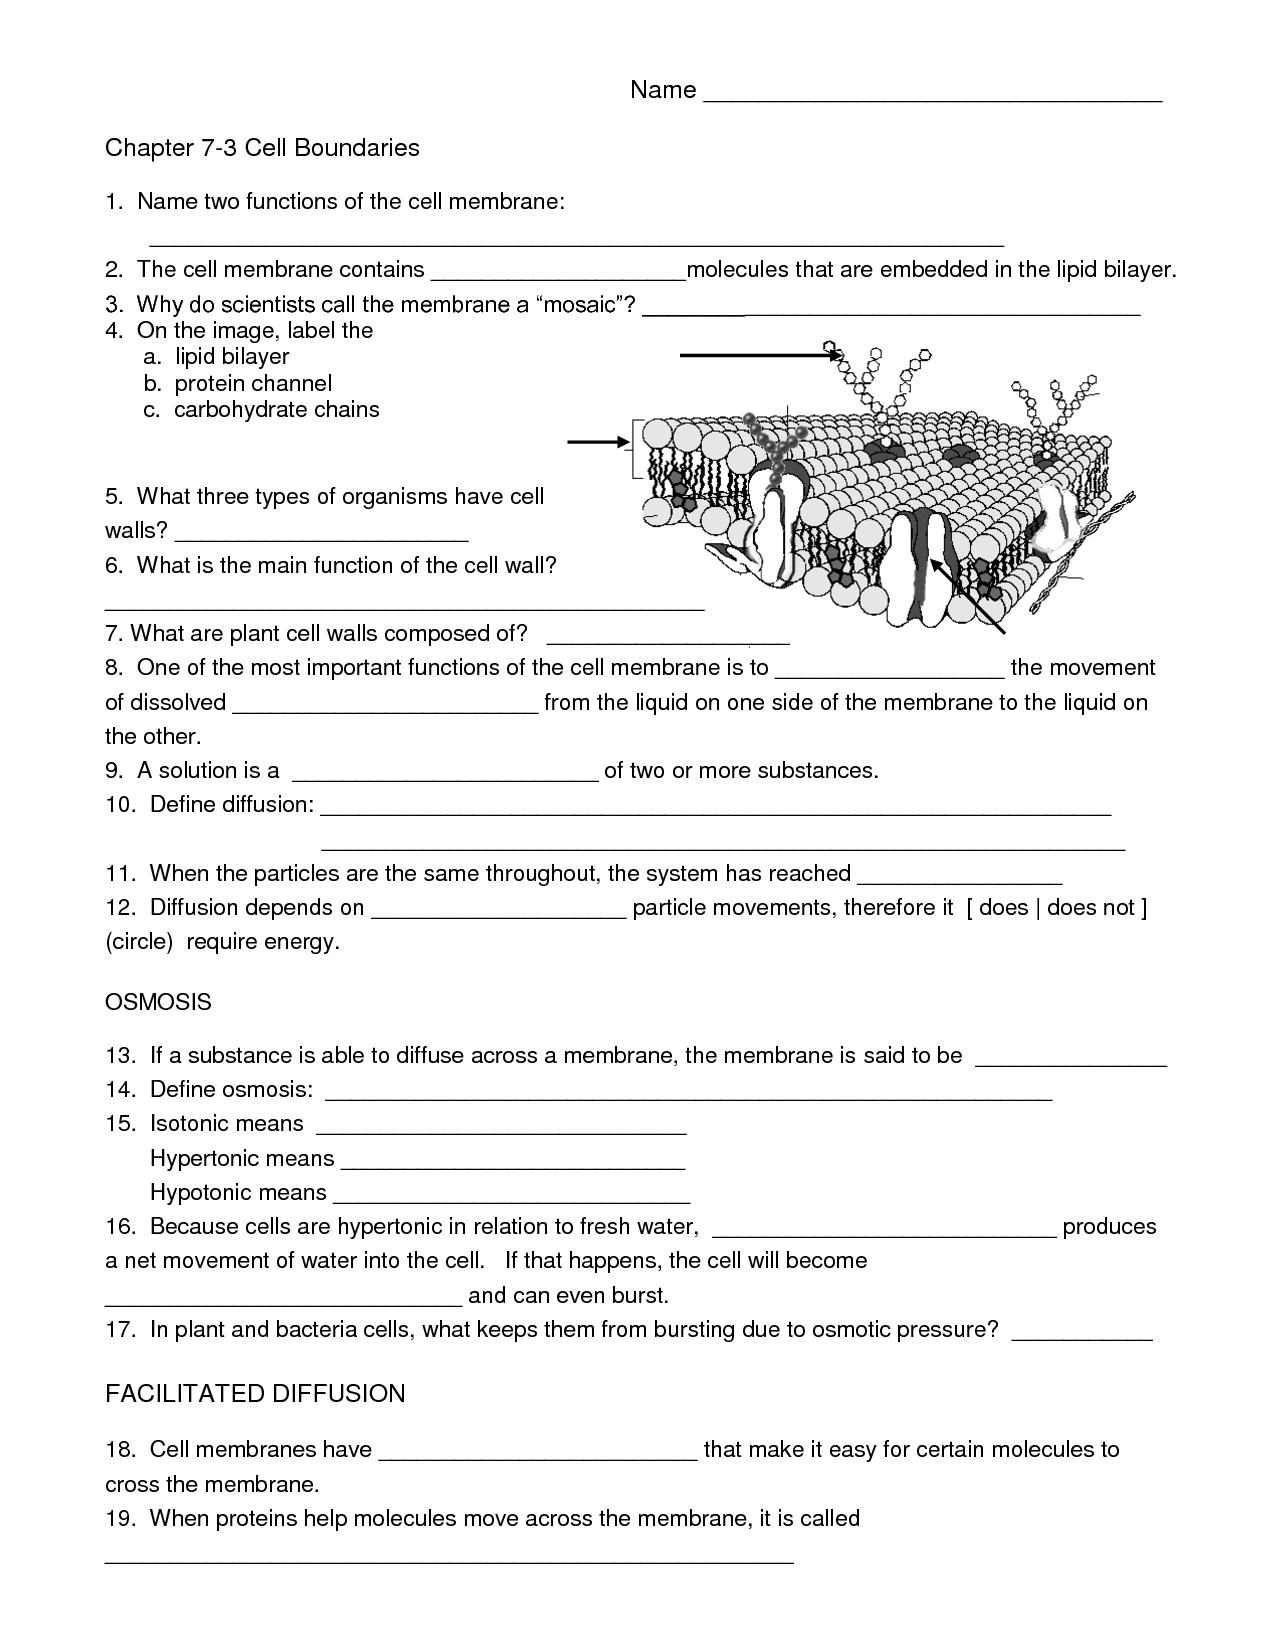 Biology Cell Worksheets | Carpe Diem Science | Pinterest - Free Printable Biology Worksheets For High School